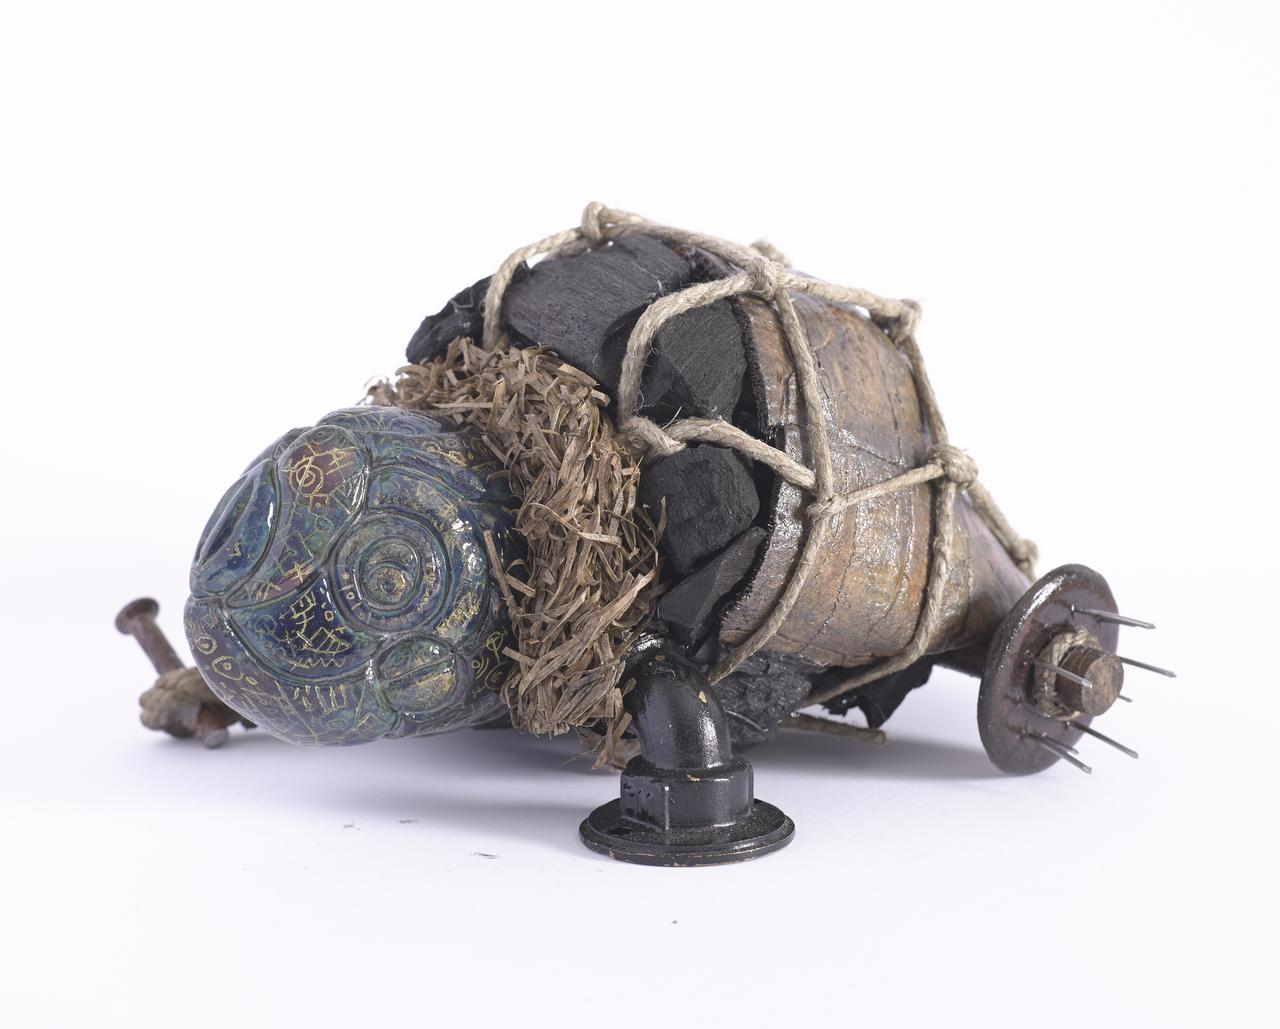 Marios Fournaris, Post-Industrial Artefact  Of The Intercultural Perception N.01,  ceramic, charcoal, wood, iron, jute, hay, brass, 2016